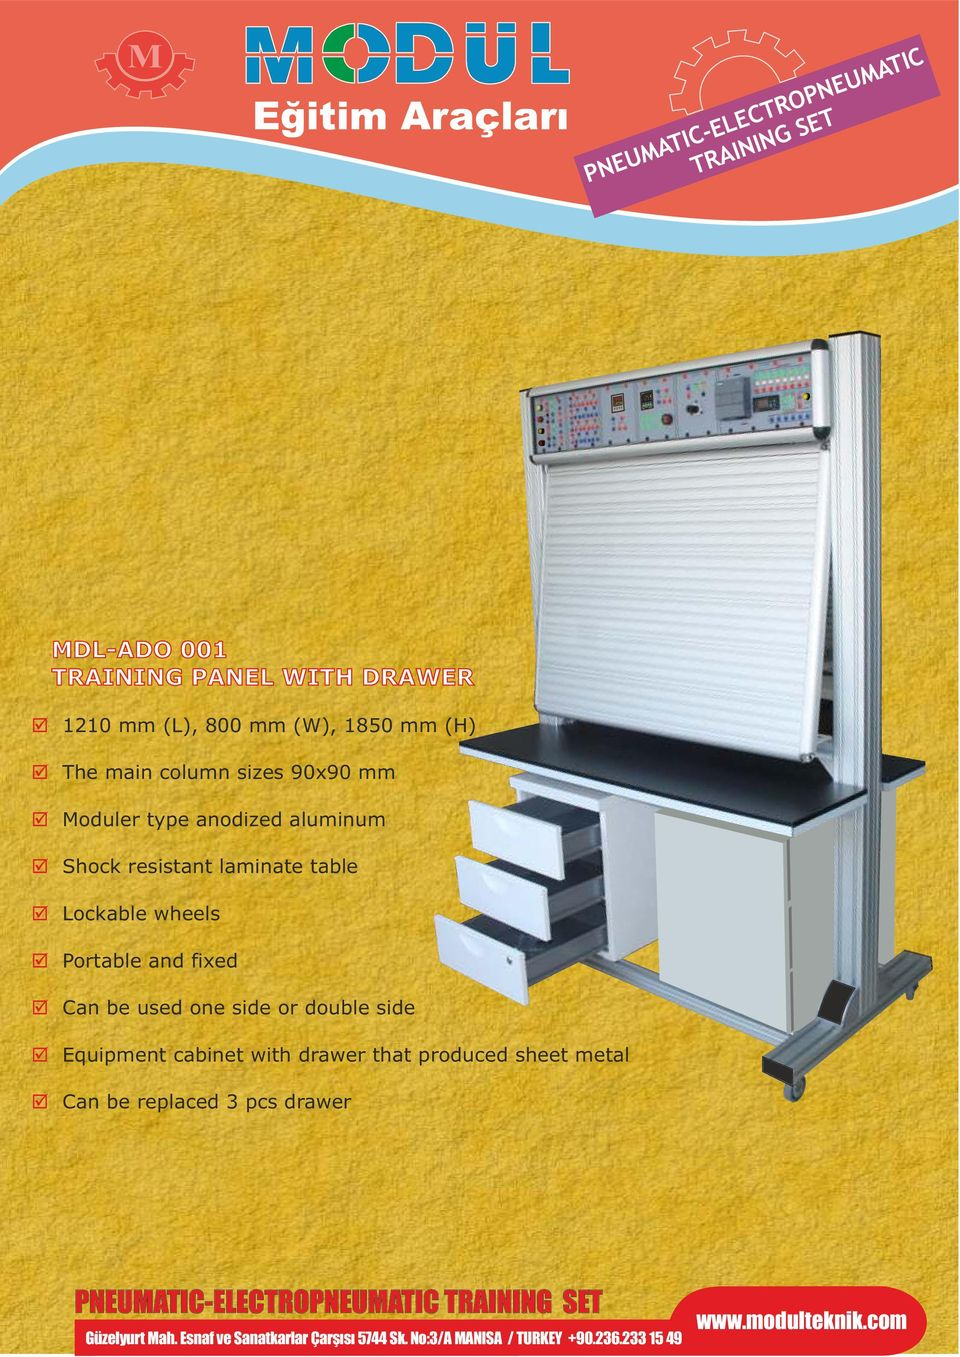 Can be used one side or double side Equipment cabinet with drawer that produced sheet metal Can be replaced pcs